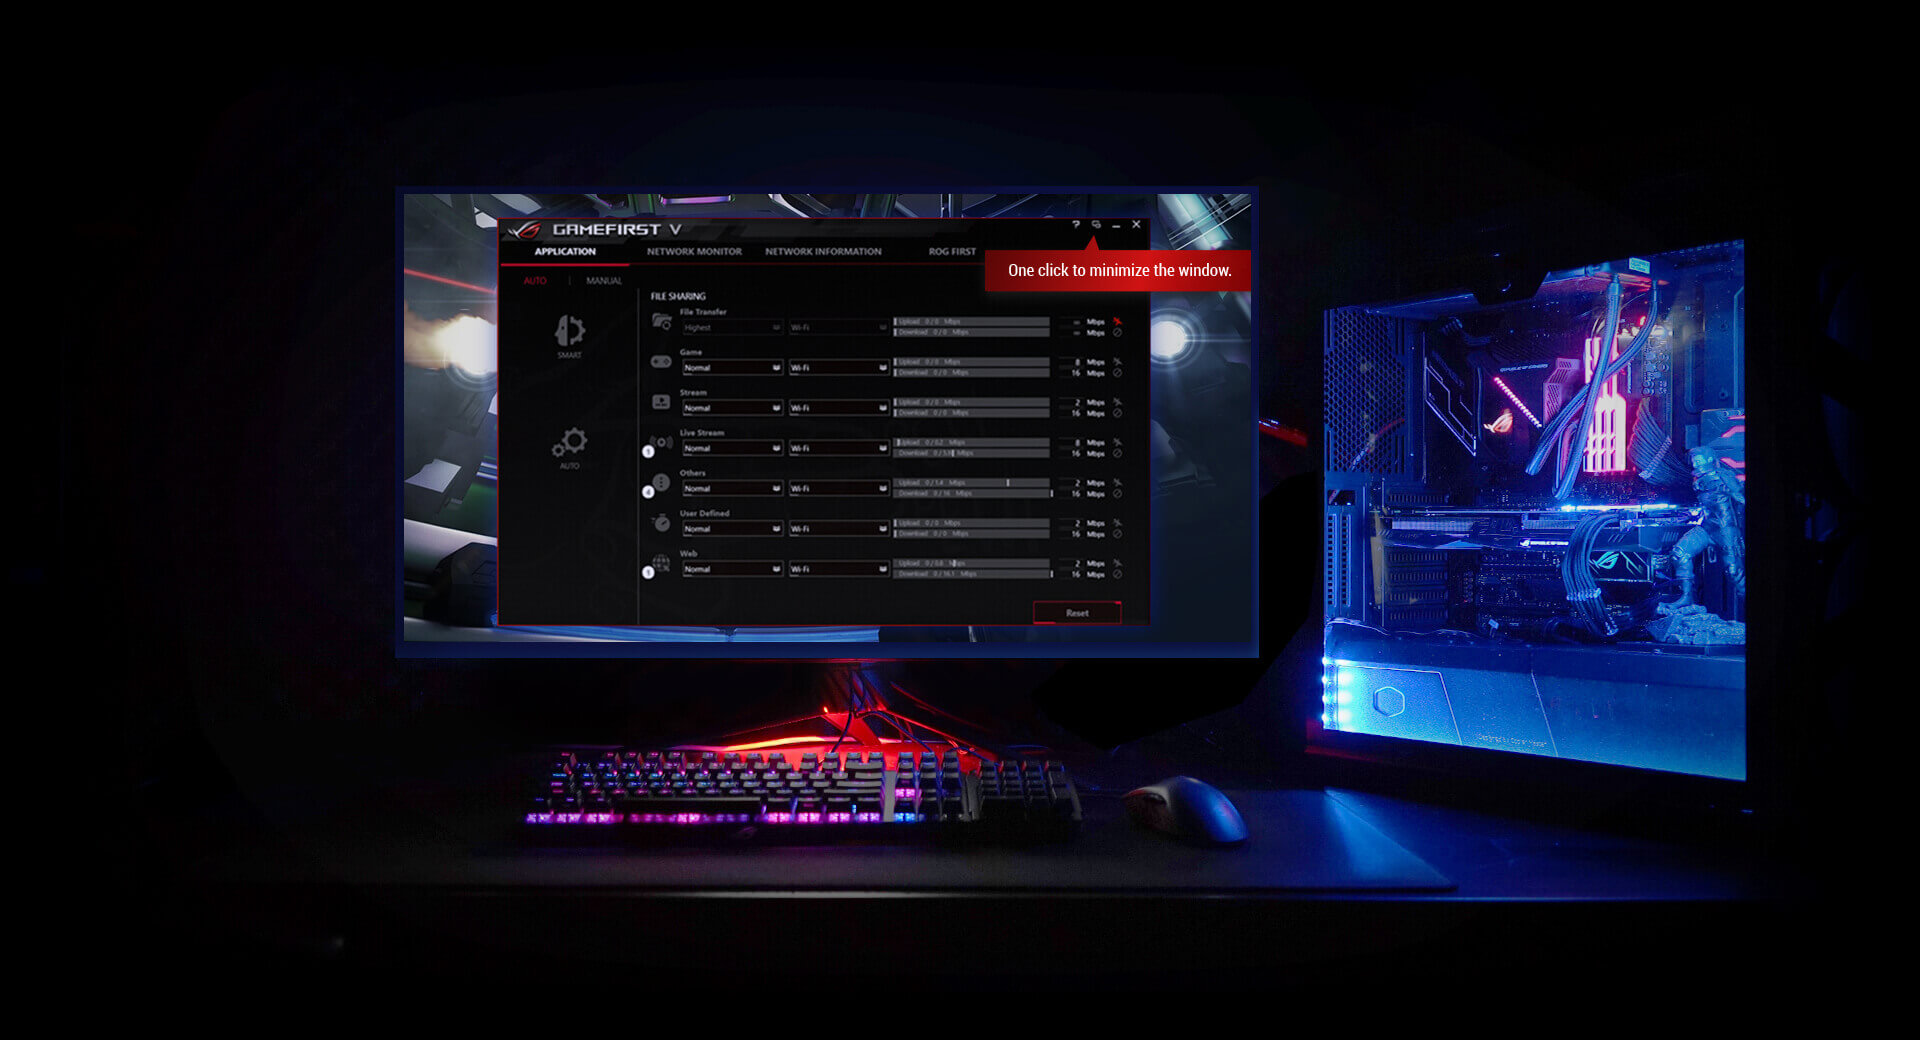 Rog Strix Z390 F Gaming Motherboards Asus Global Tuff Led Wiring A Harness View Or Adjust Network Settings During Your Game Without Interrupting Play